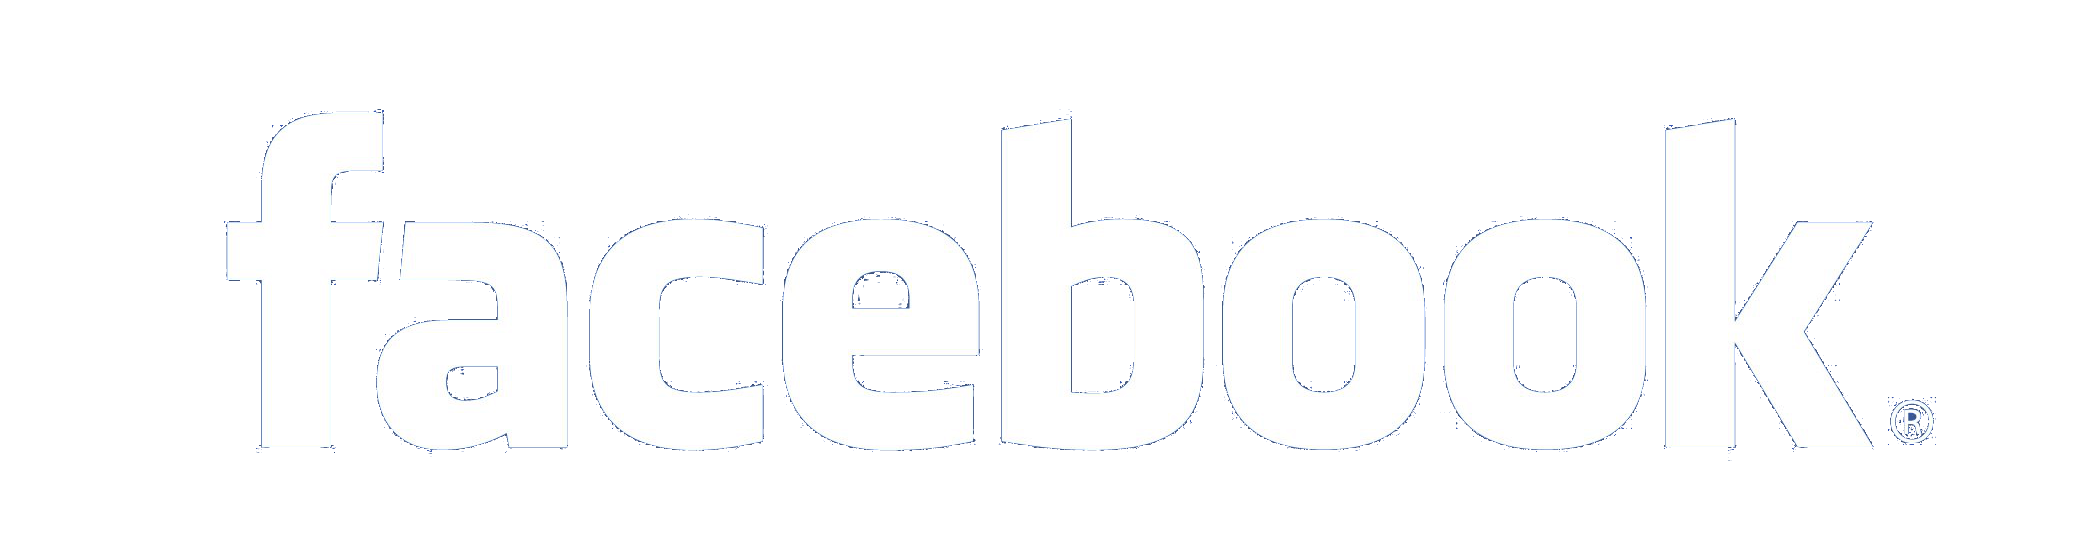 Facebook White Logo